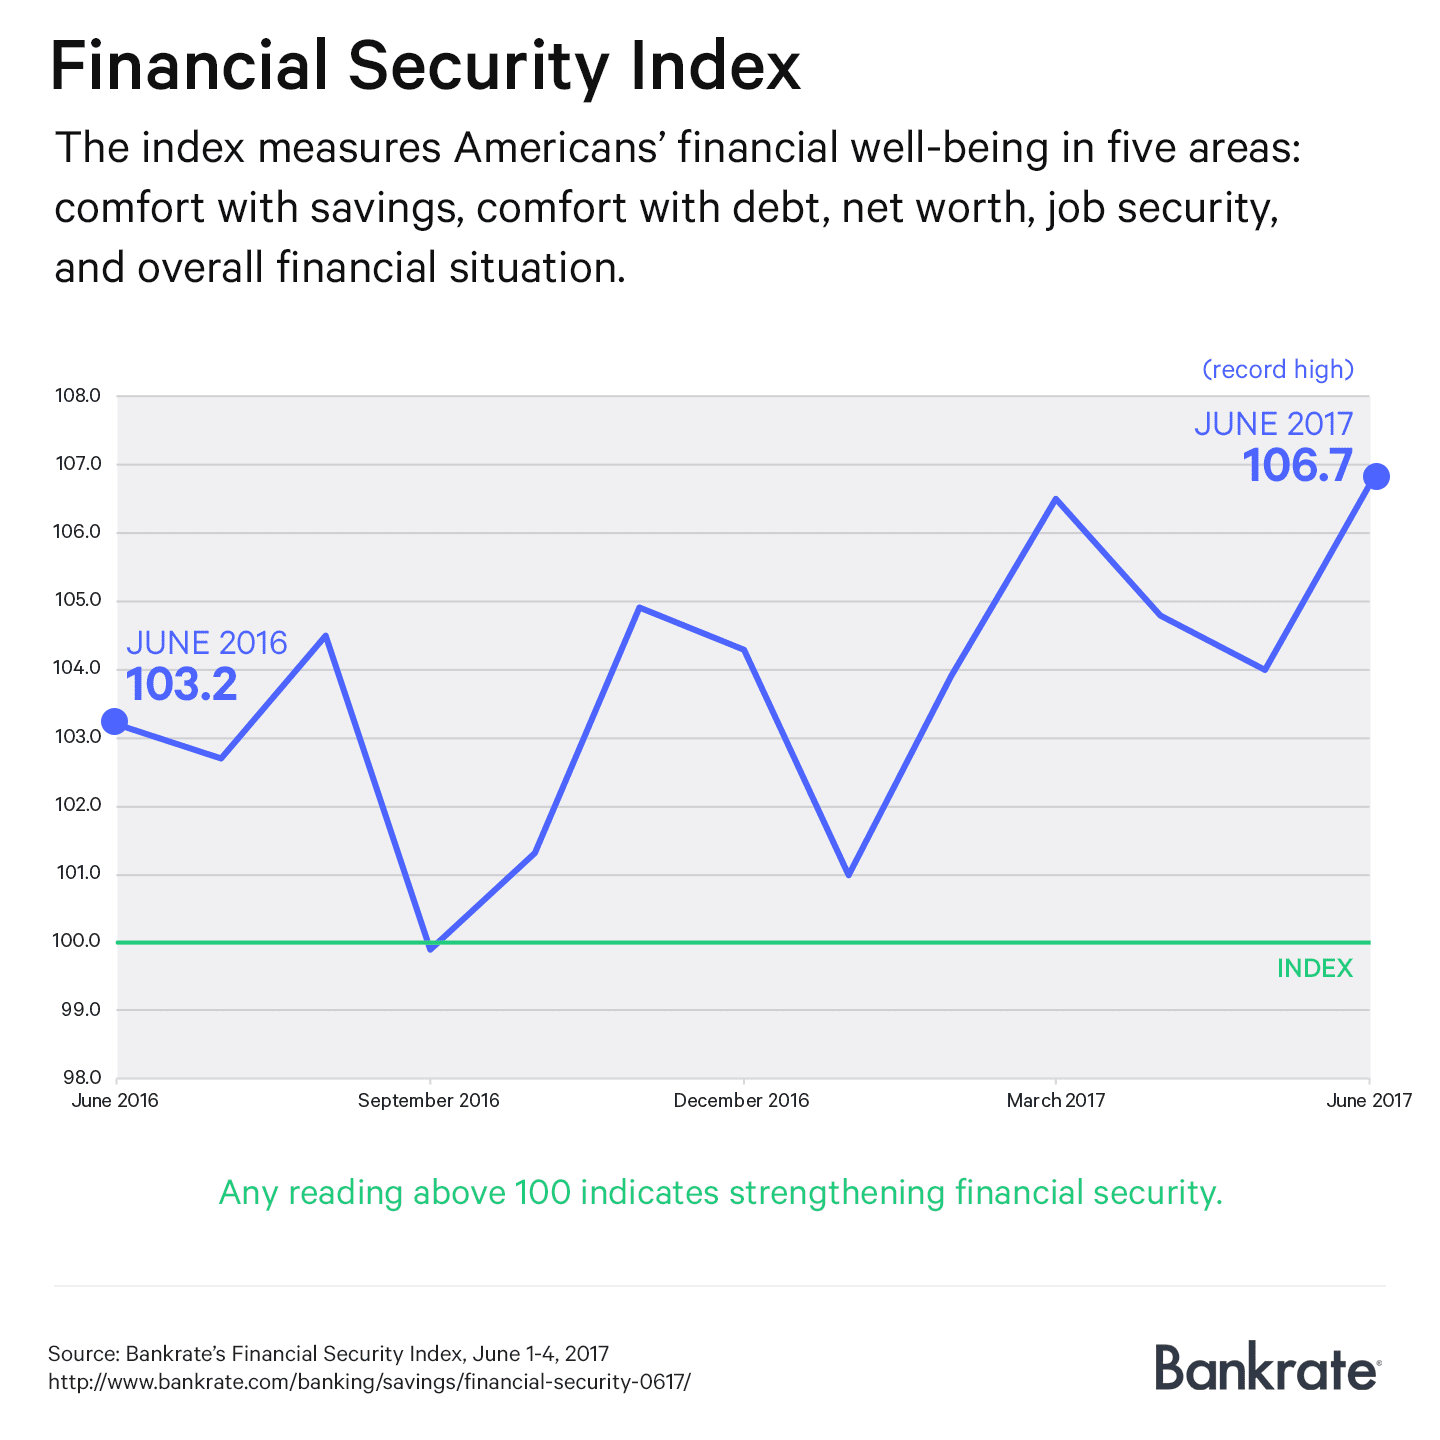 Financial Security Index: June 2017